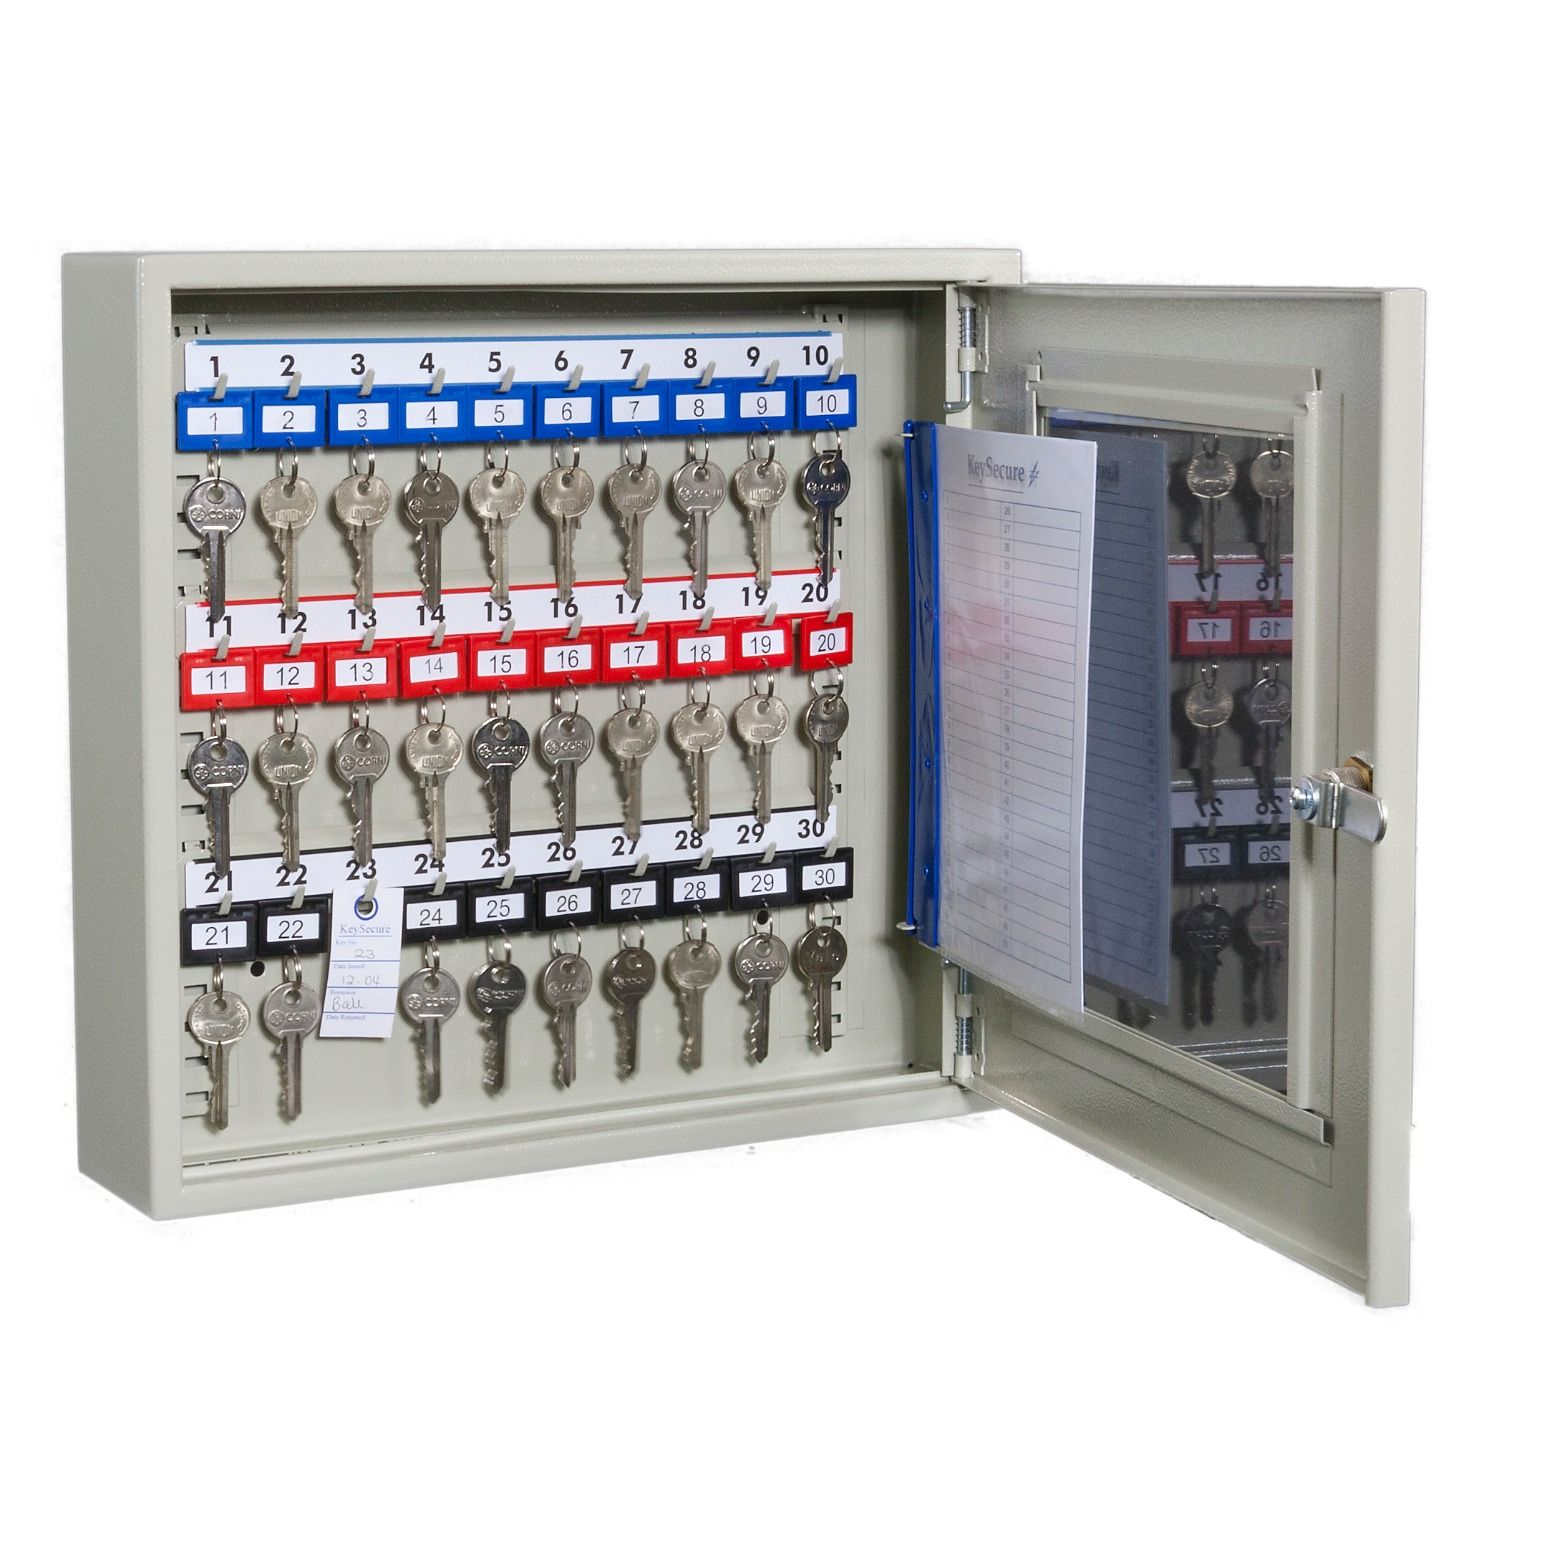 clear_fronted_perspex_key_cabinets_with_electronic_cam_lock_30_hook_35_x_38_x_10.5cm_open.jpg